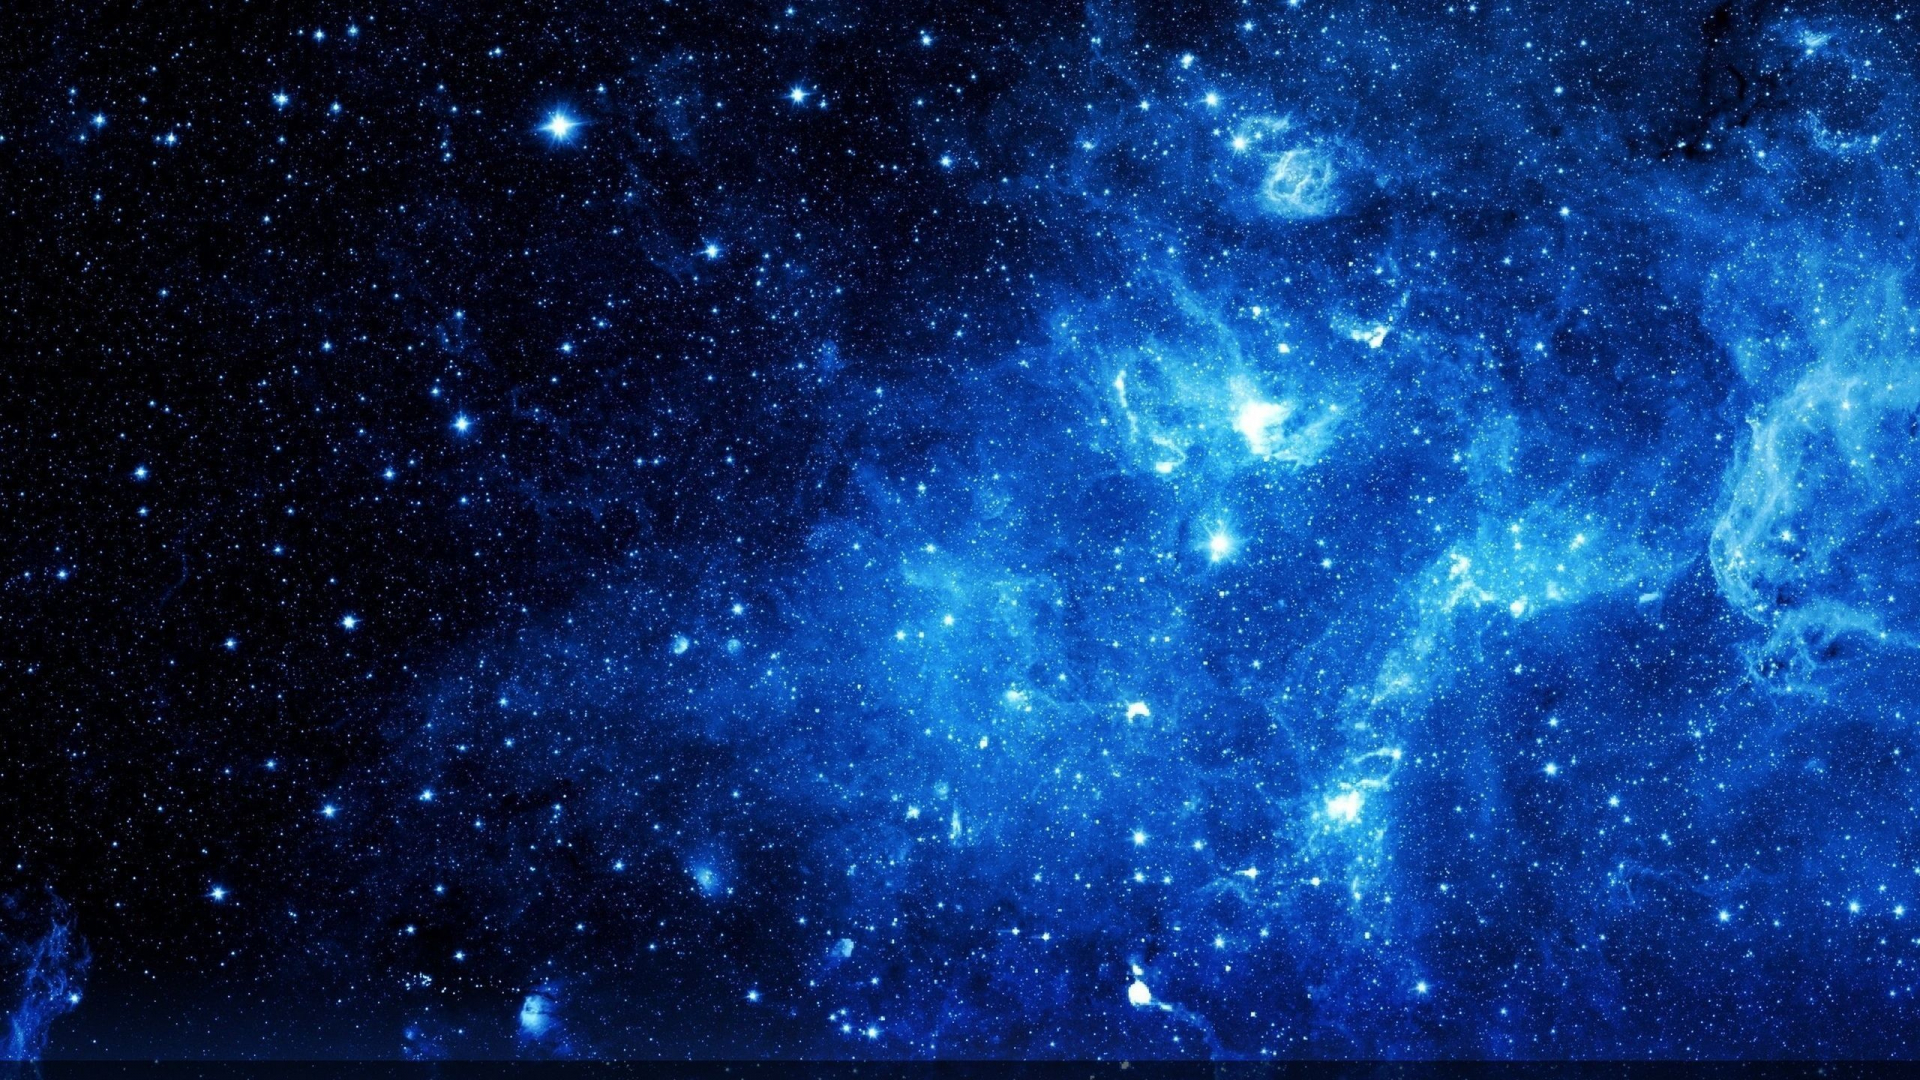 Free download Res 2560x1600 Blue Galaxy 4K or HD wallpaper for your PC Mac or [2560x1600] for